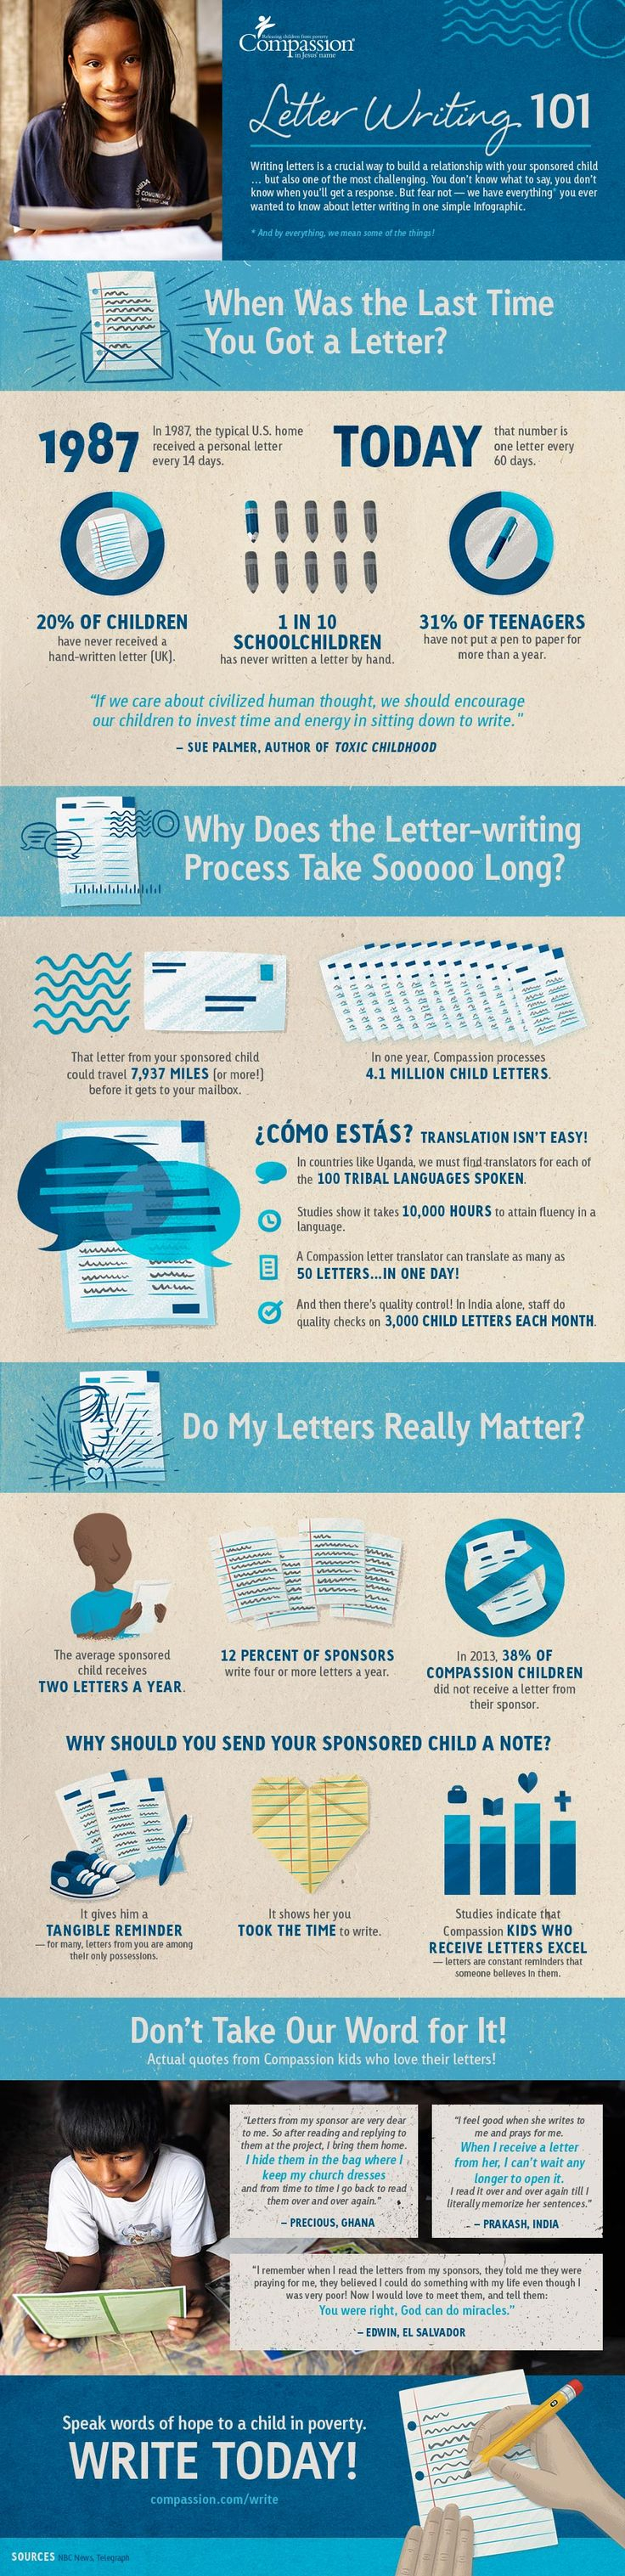 compassion international letter template Collection-Letter Writing 101 Writing letters is a crucial way to build a relationship with your 15-o